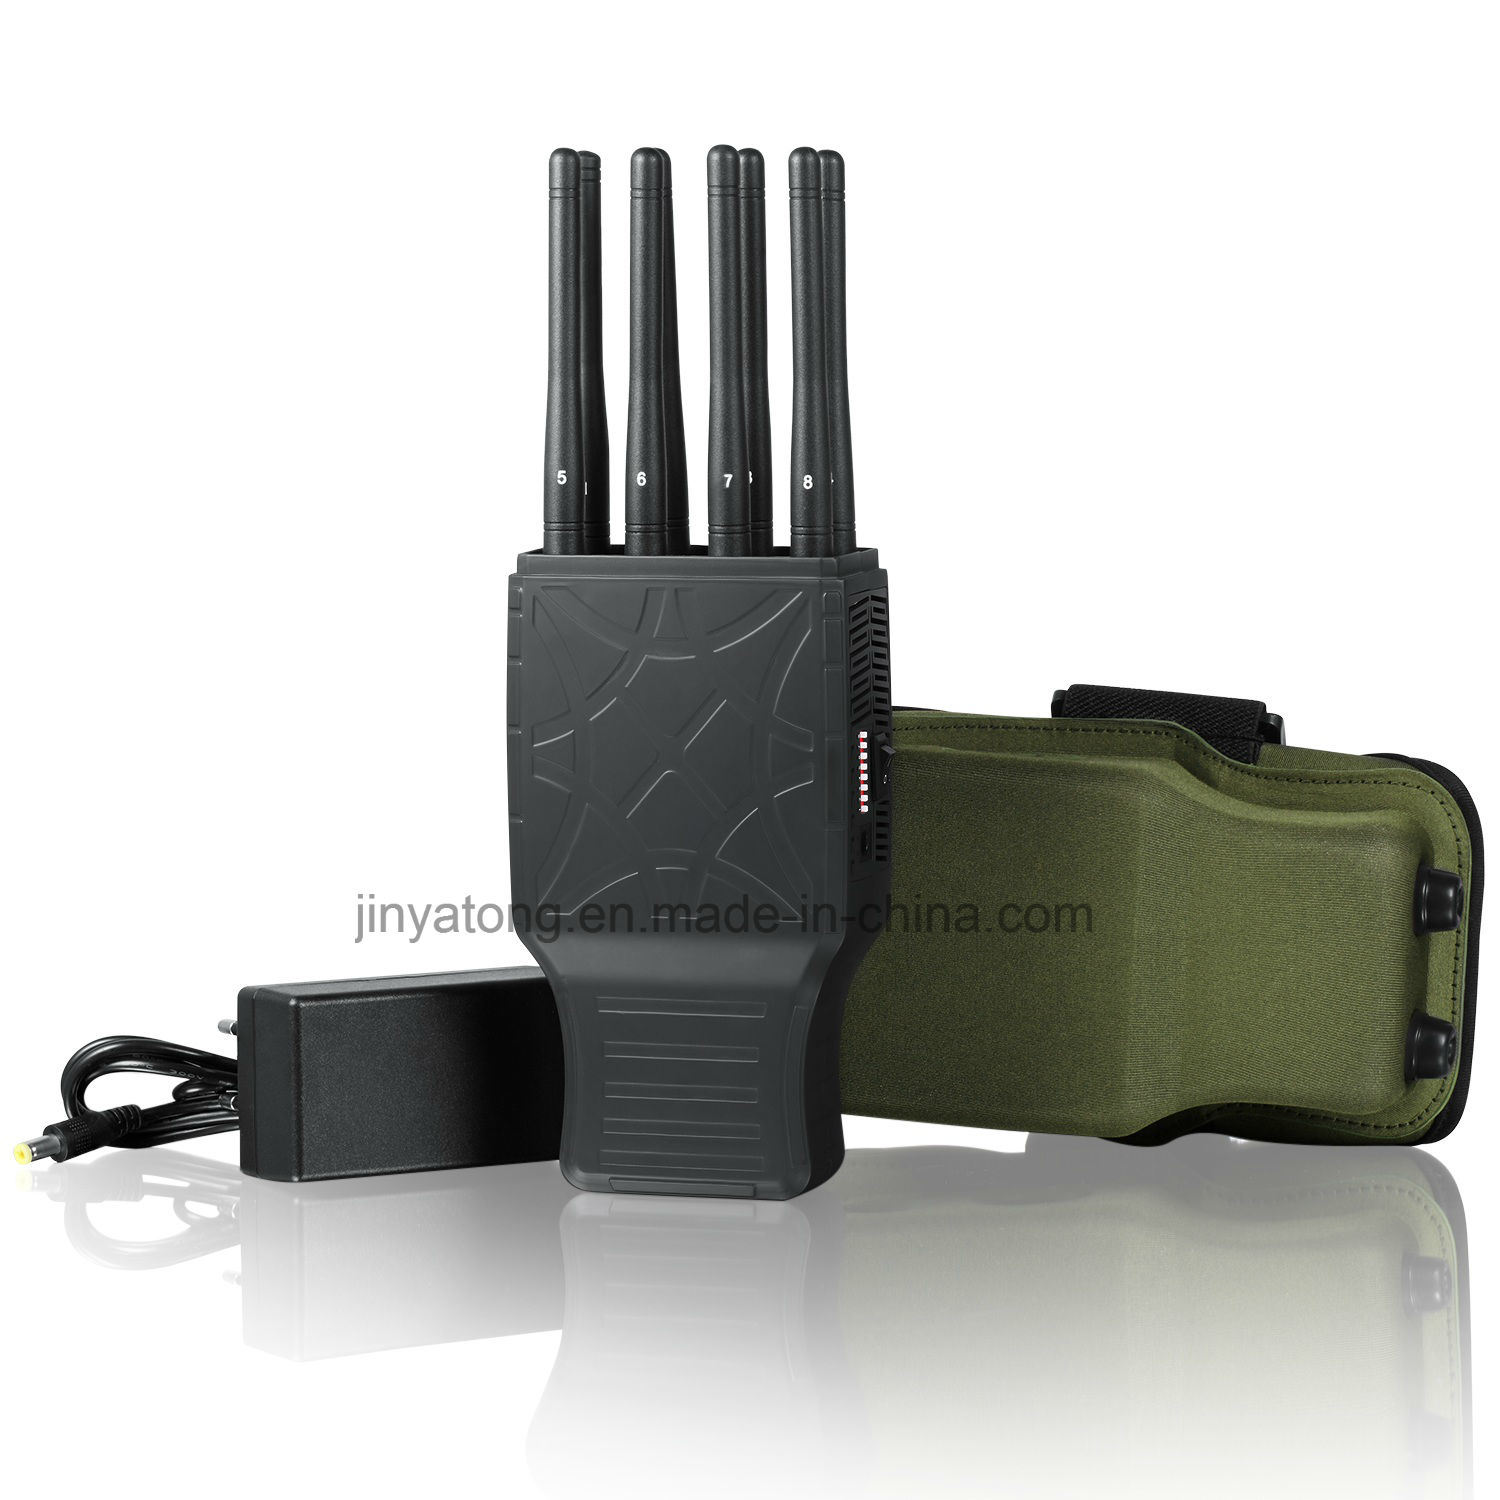 8 Bands Portable Cell Phone Jammer with Nylon Case